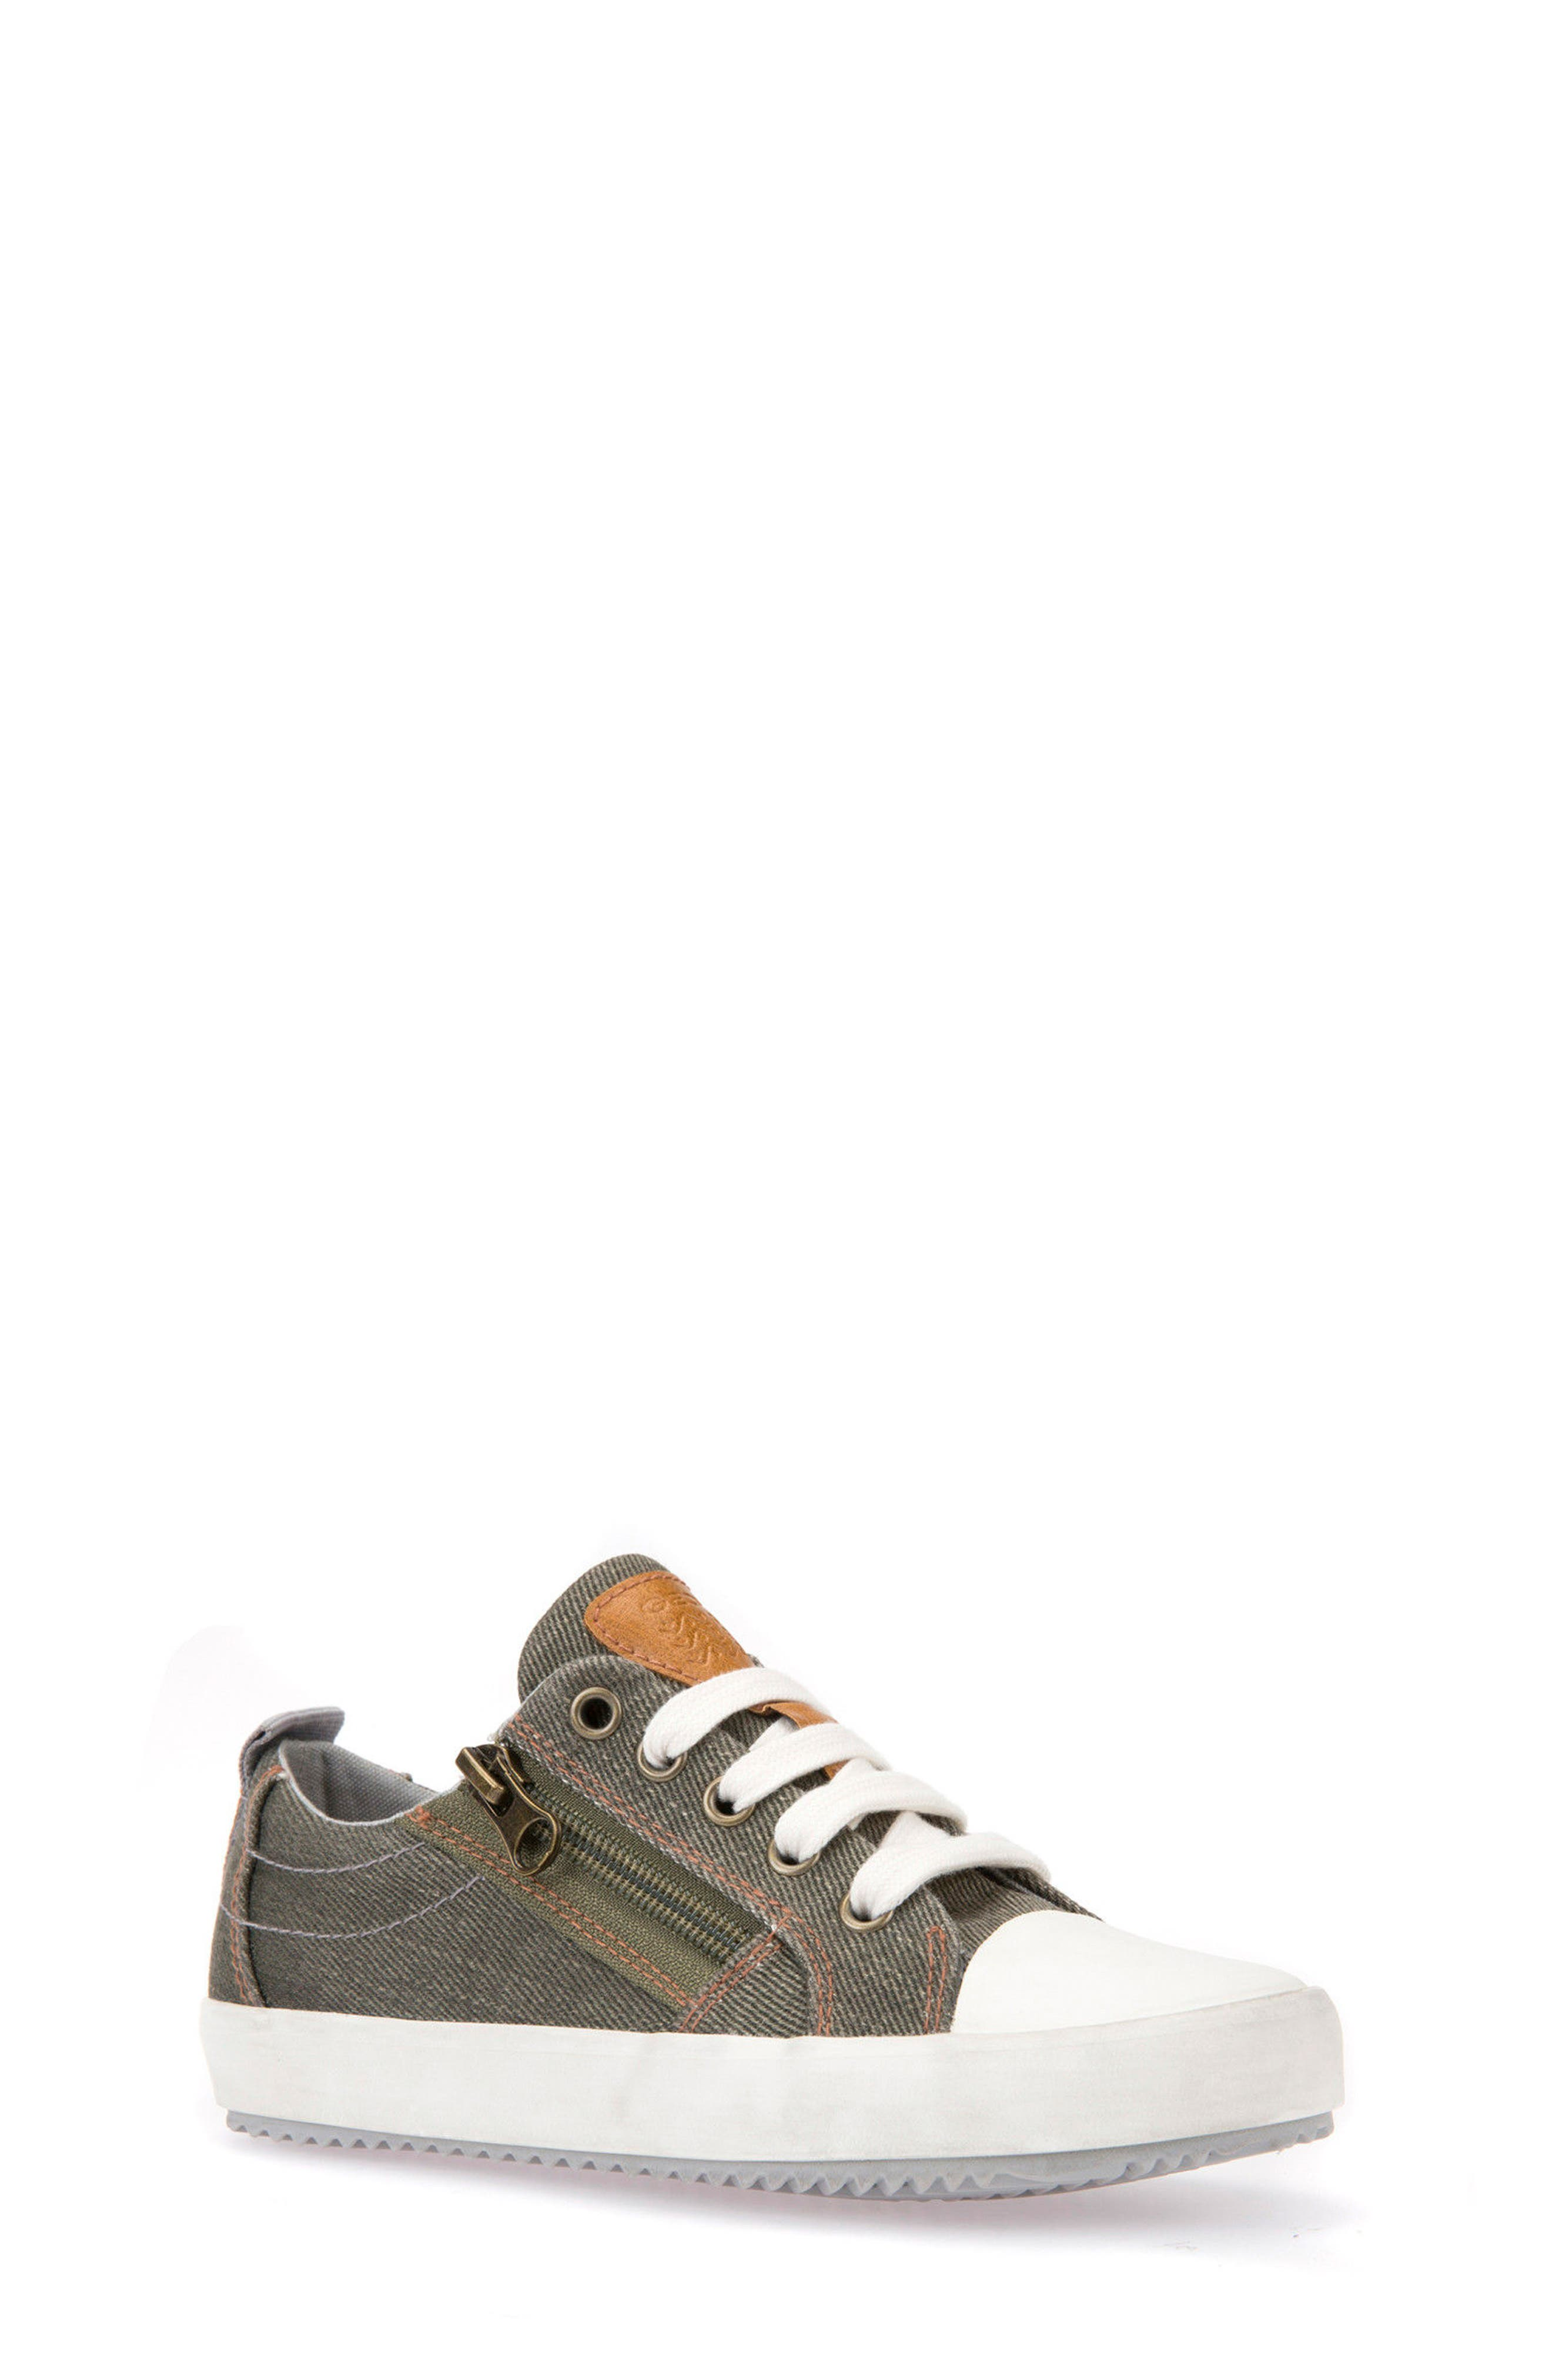 Alonisso Low Top Sneaker,                         Main,                         color, MILITARY/ GREY